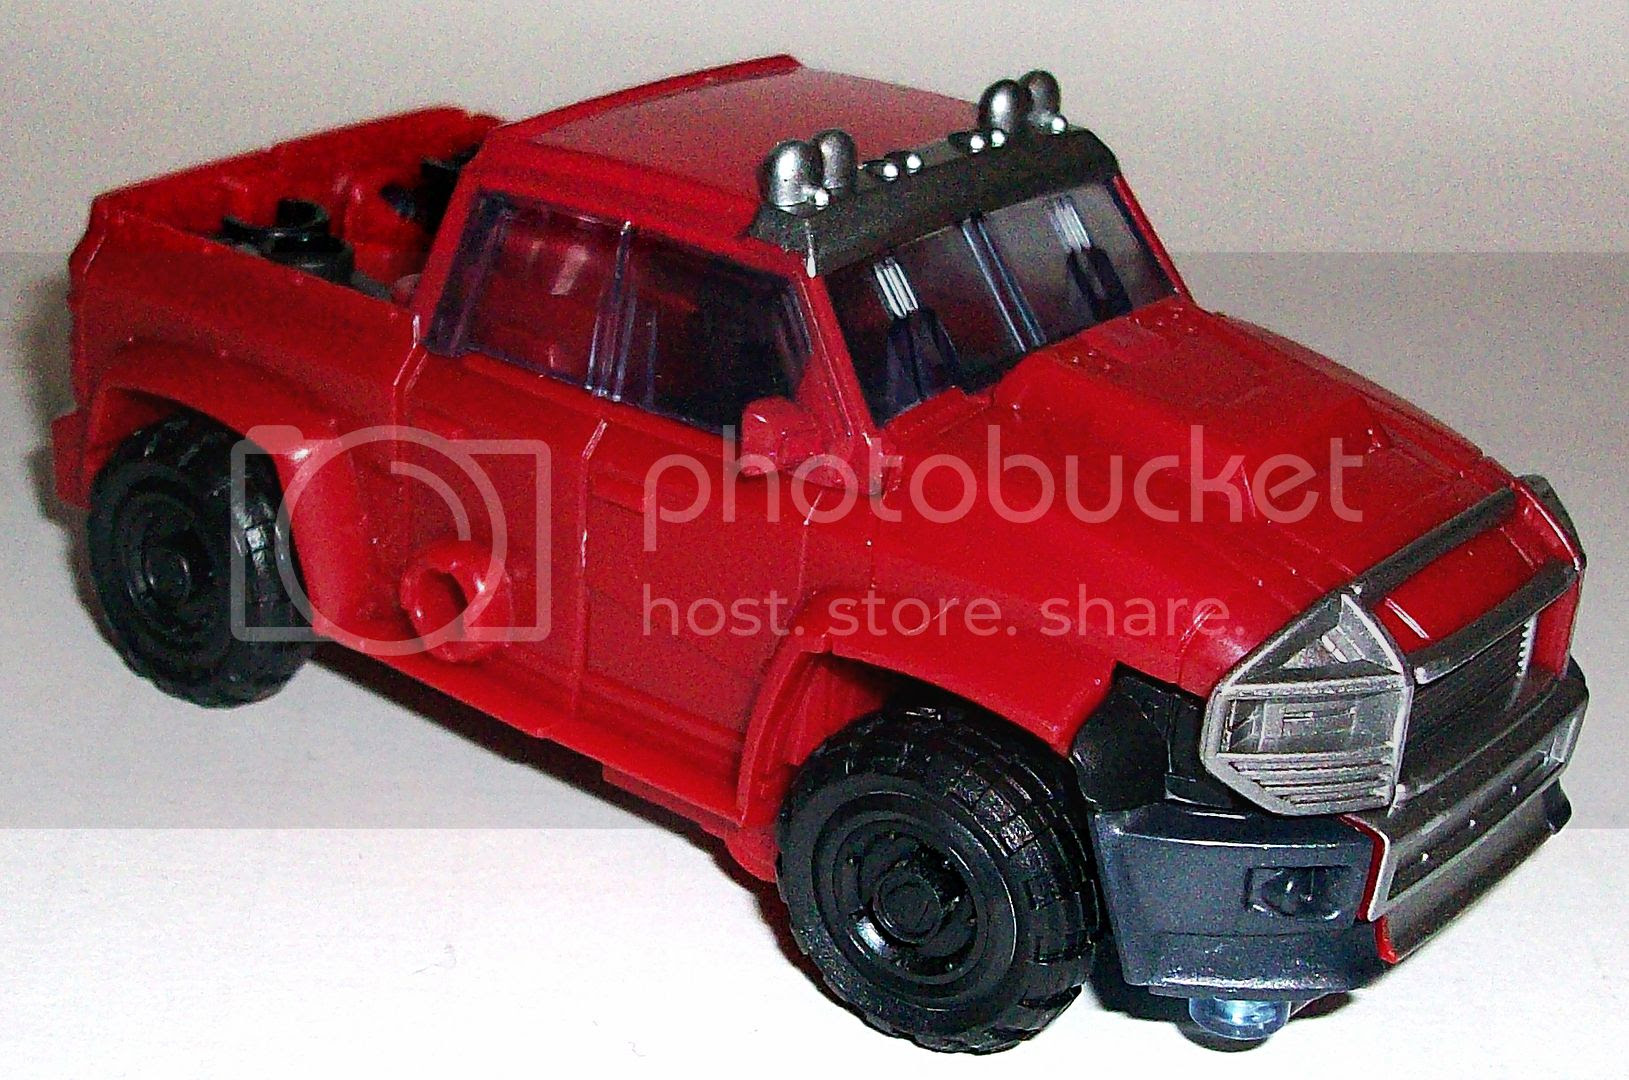 Ironhide AM-20 photo 187_zps009ce3c2.jpg